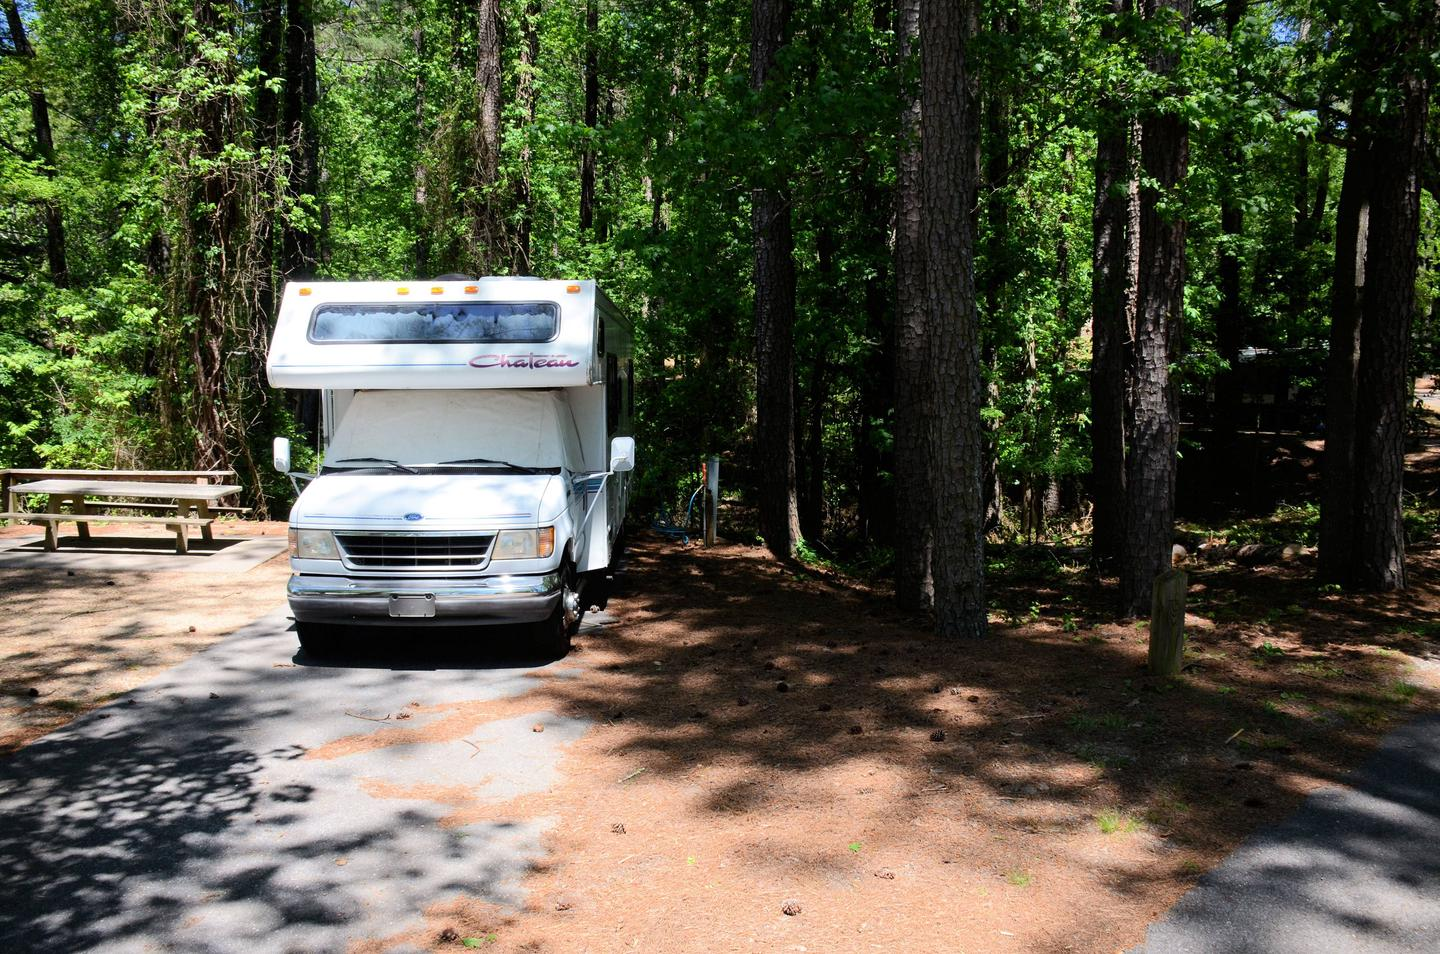 Driveway slope, utilities-side clearanceMcKinney Campground, campsite 121.